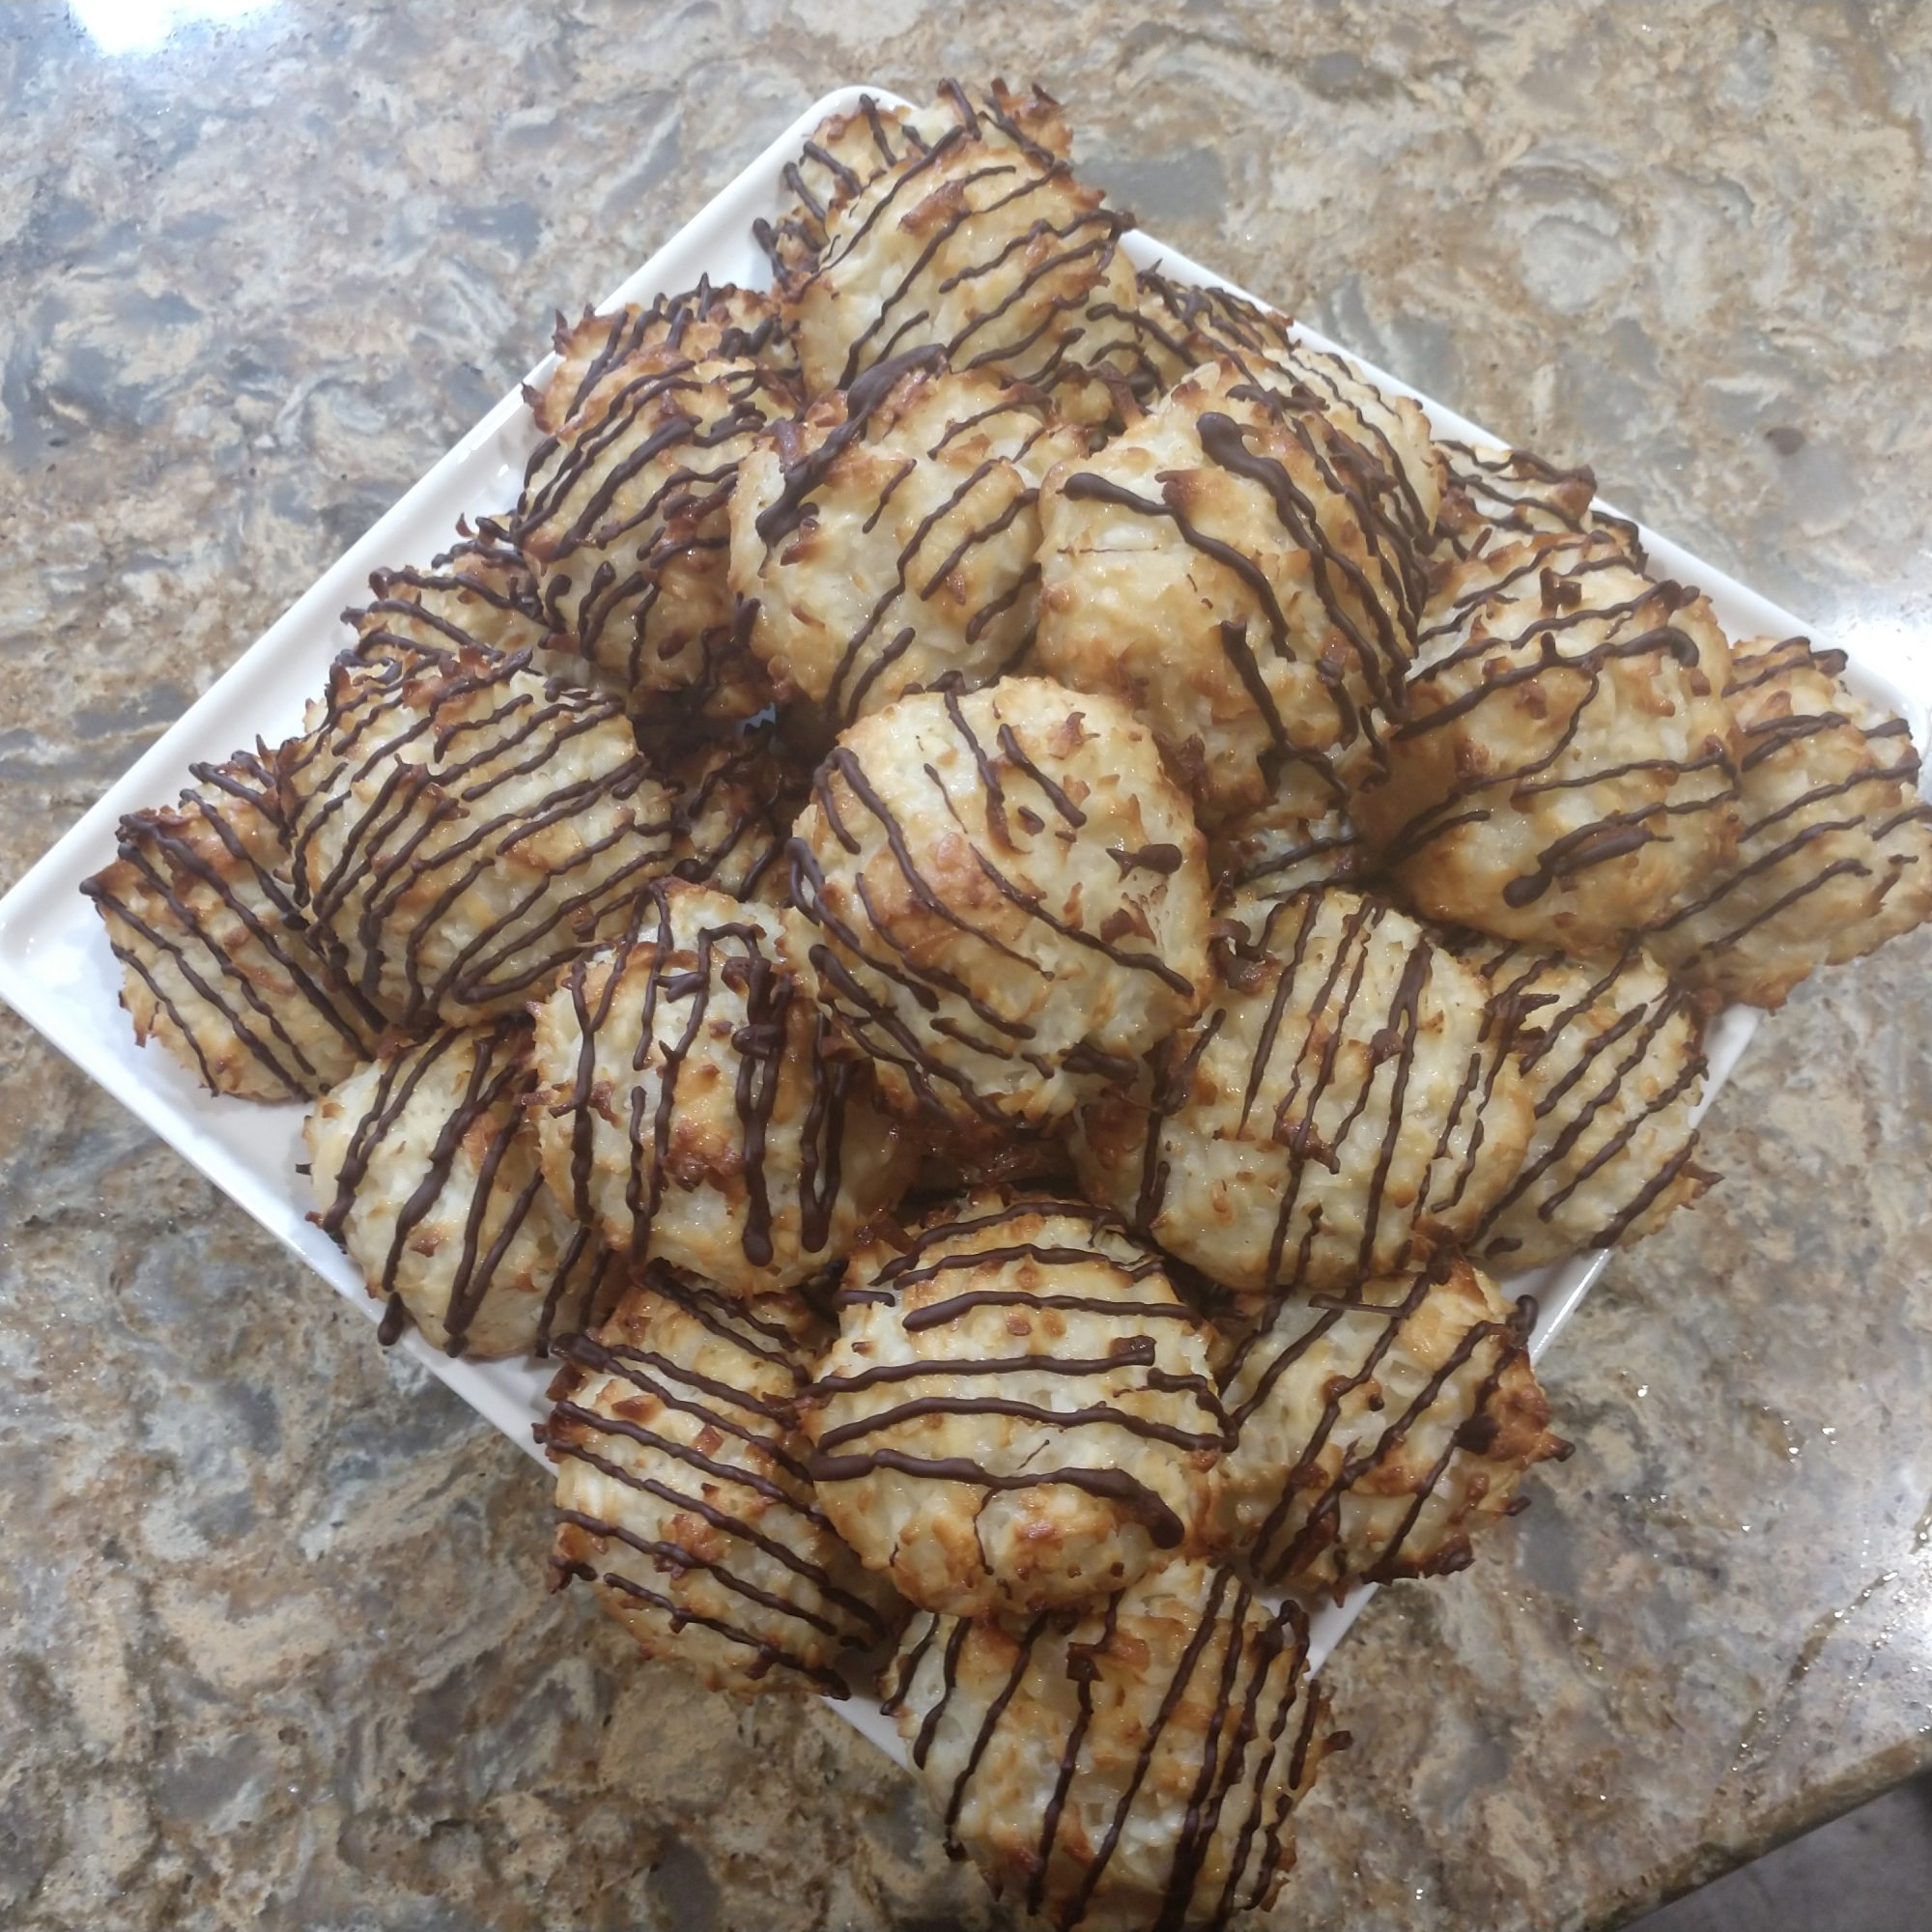 Chocolate drizzled